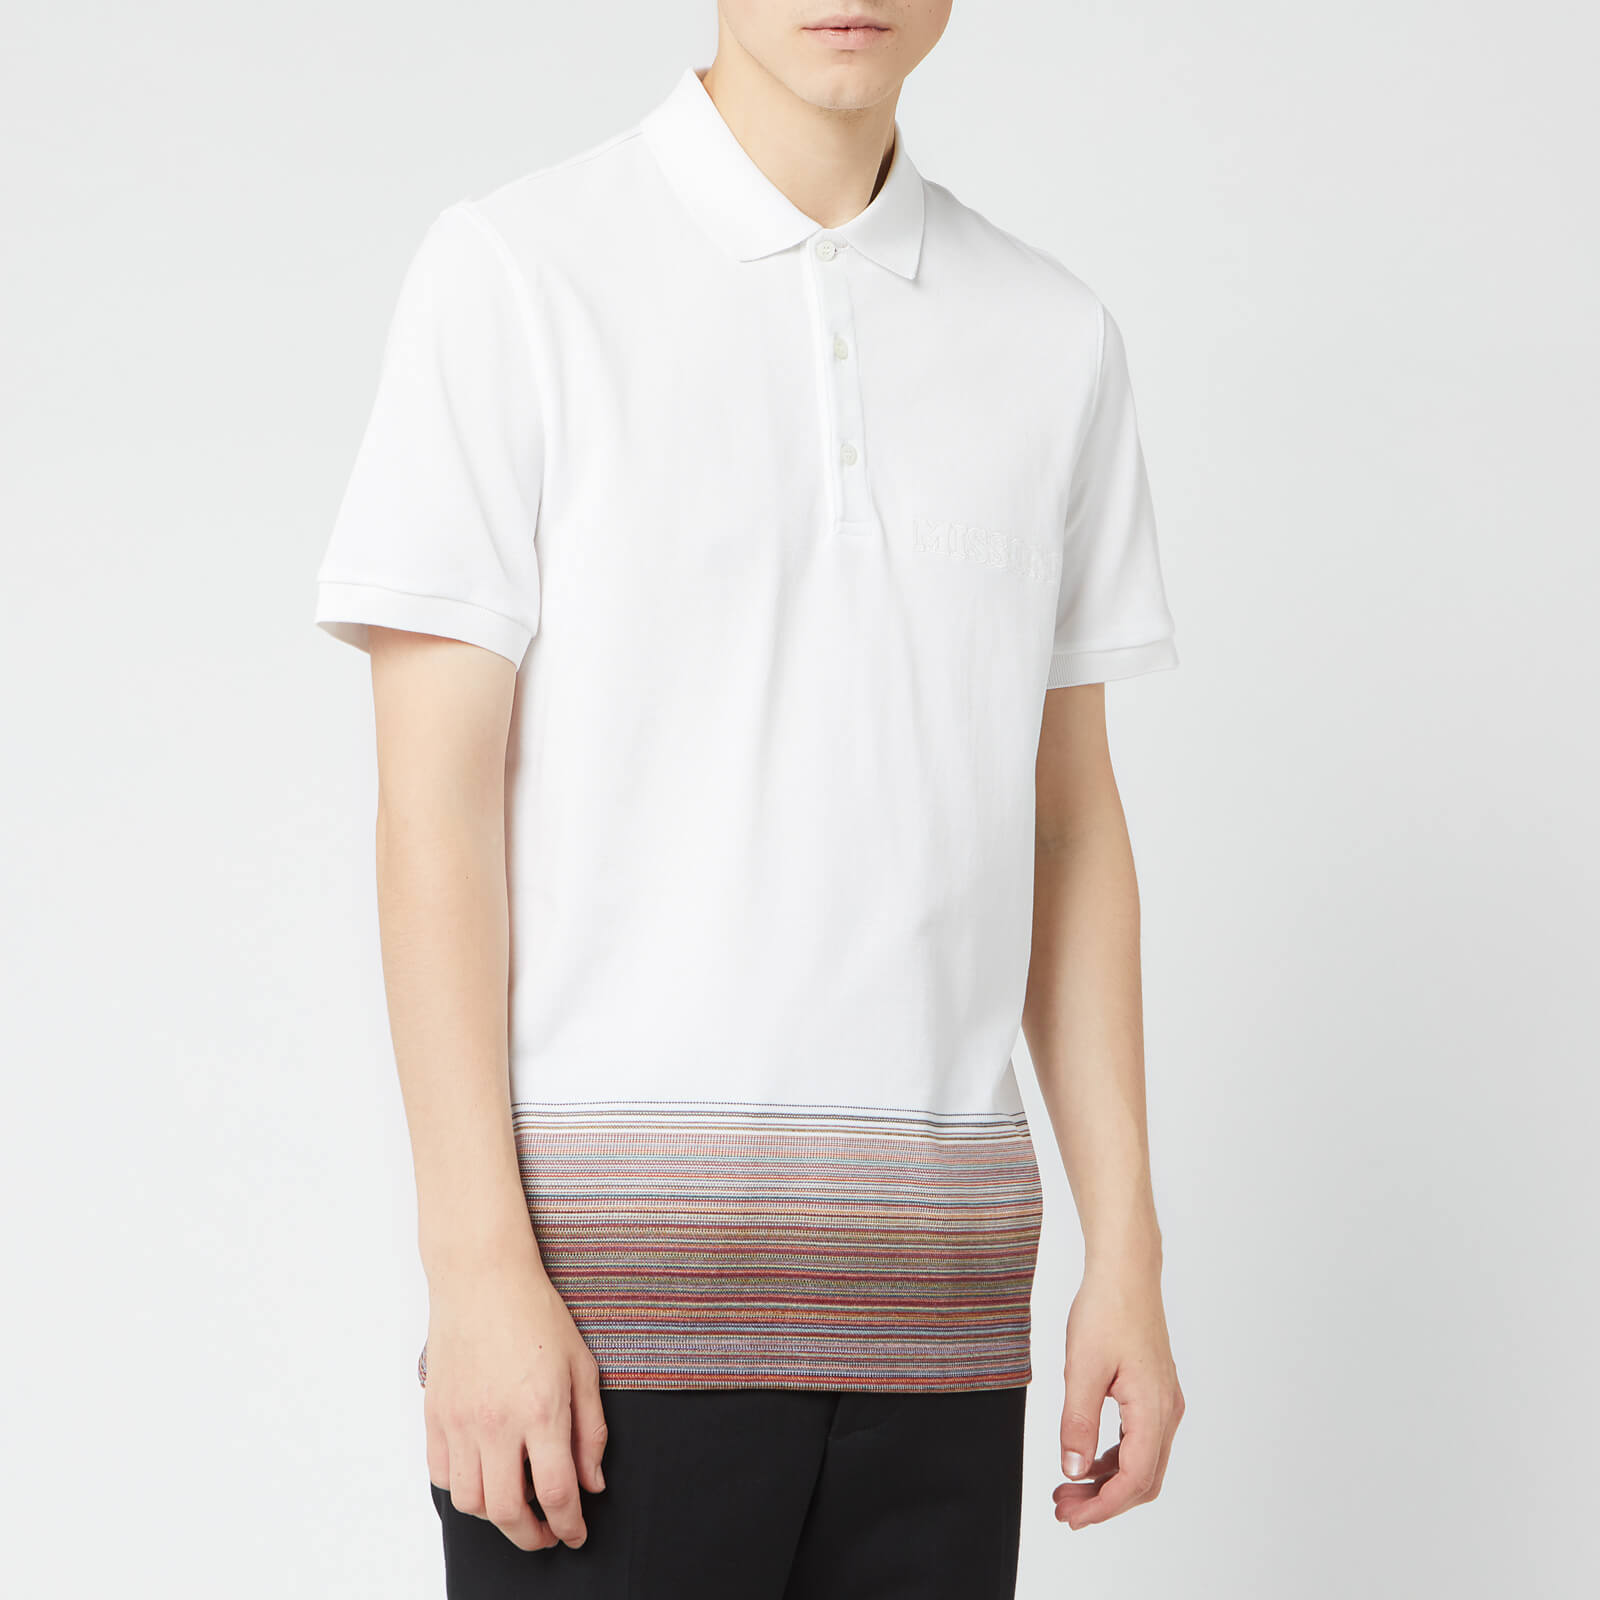 7a419849342c8 Missoni Men's Short Sleeve Polo Shirt - Multi - Free UK Delivery over £50